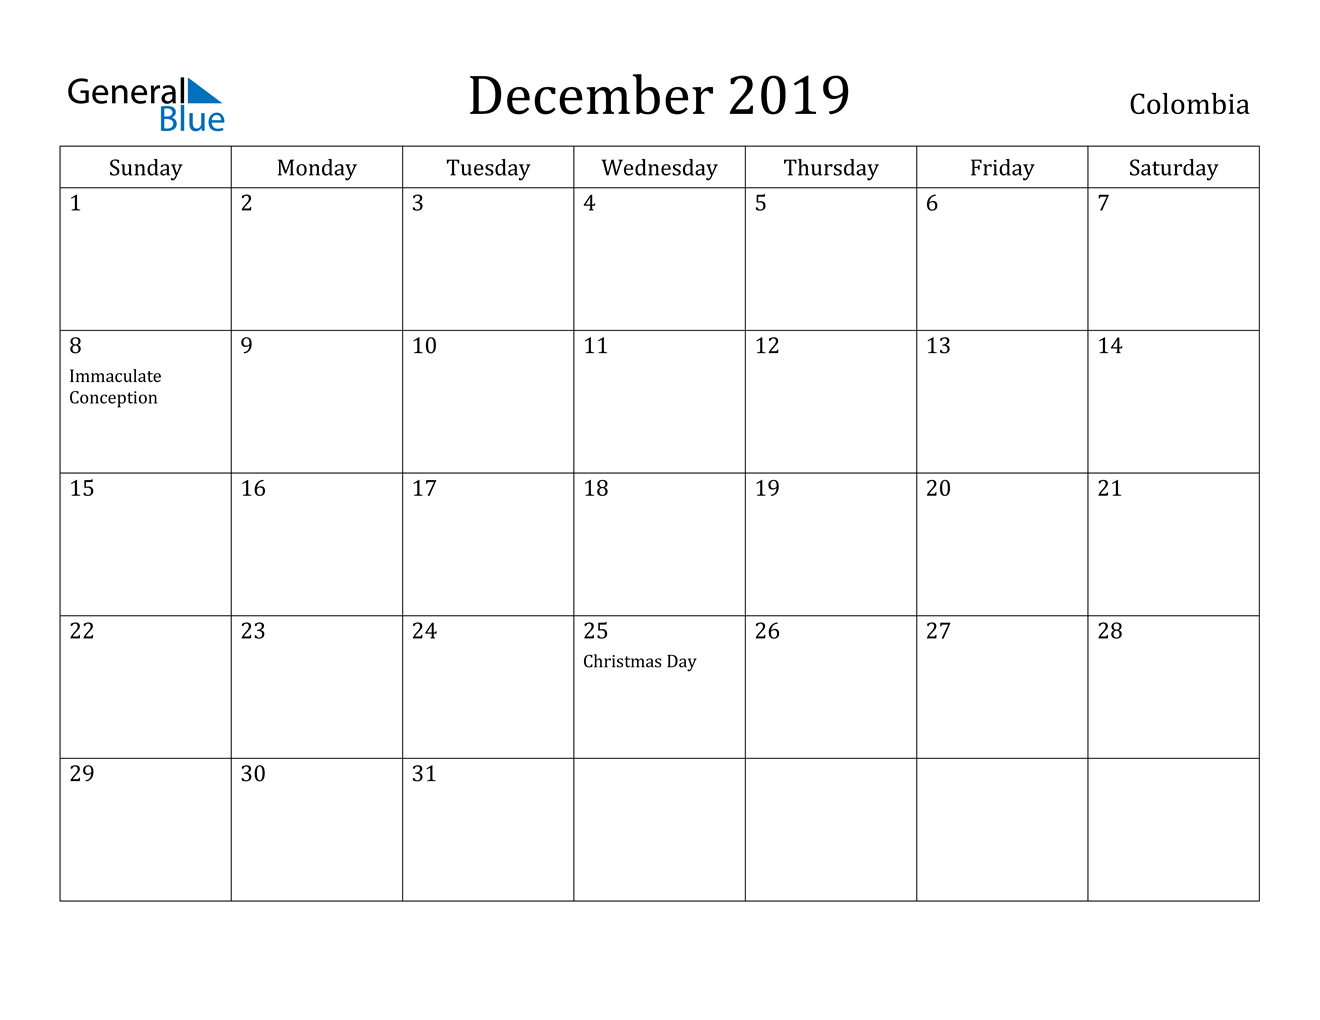 Image of December 2019 Colombia Calendar with Holidays Calendar